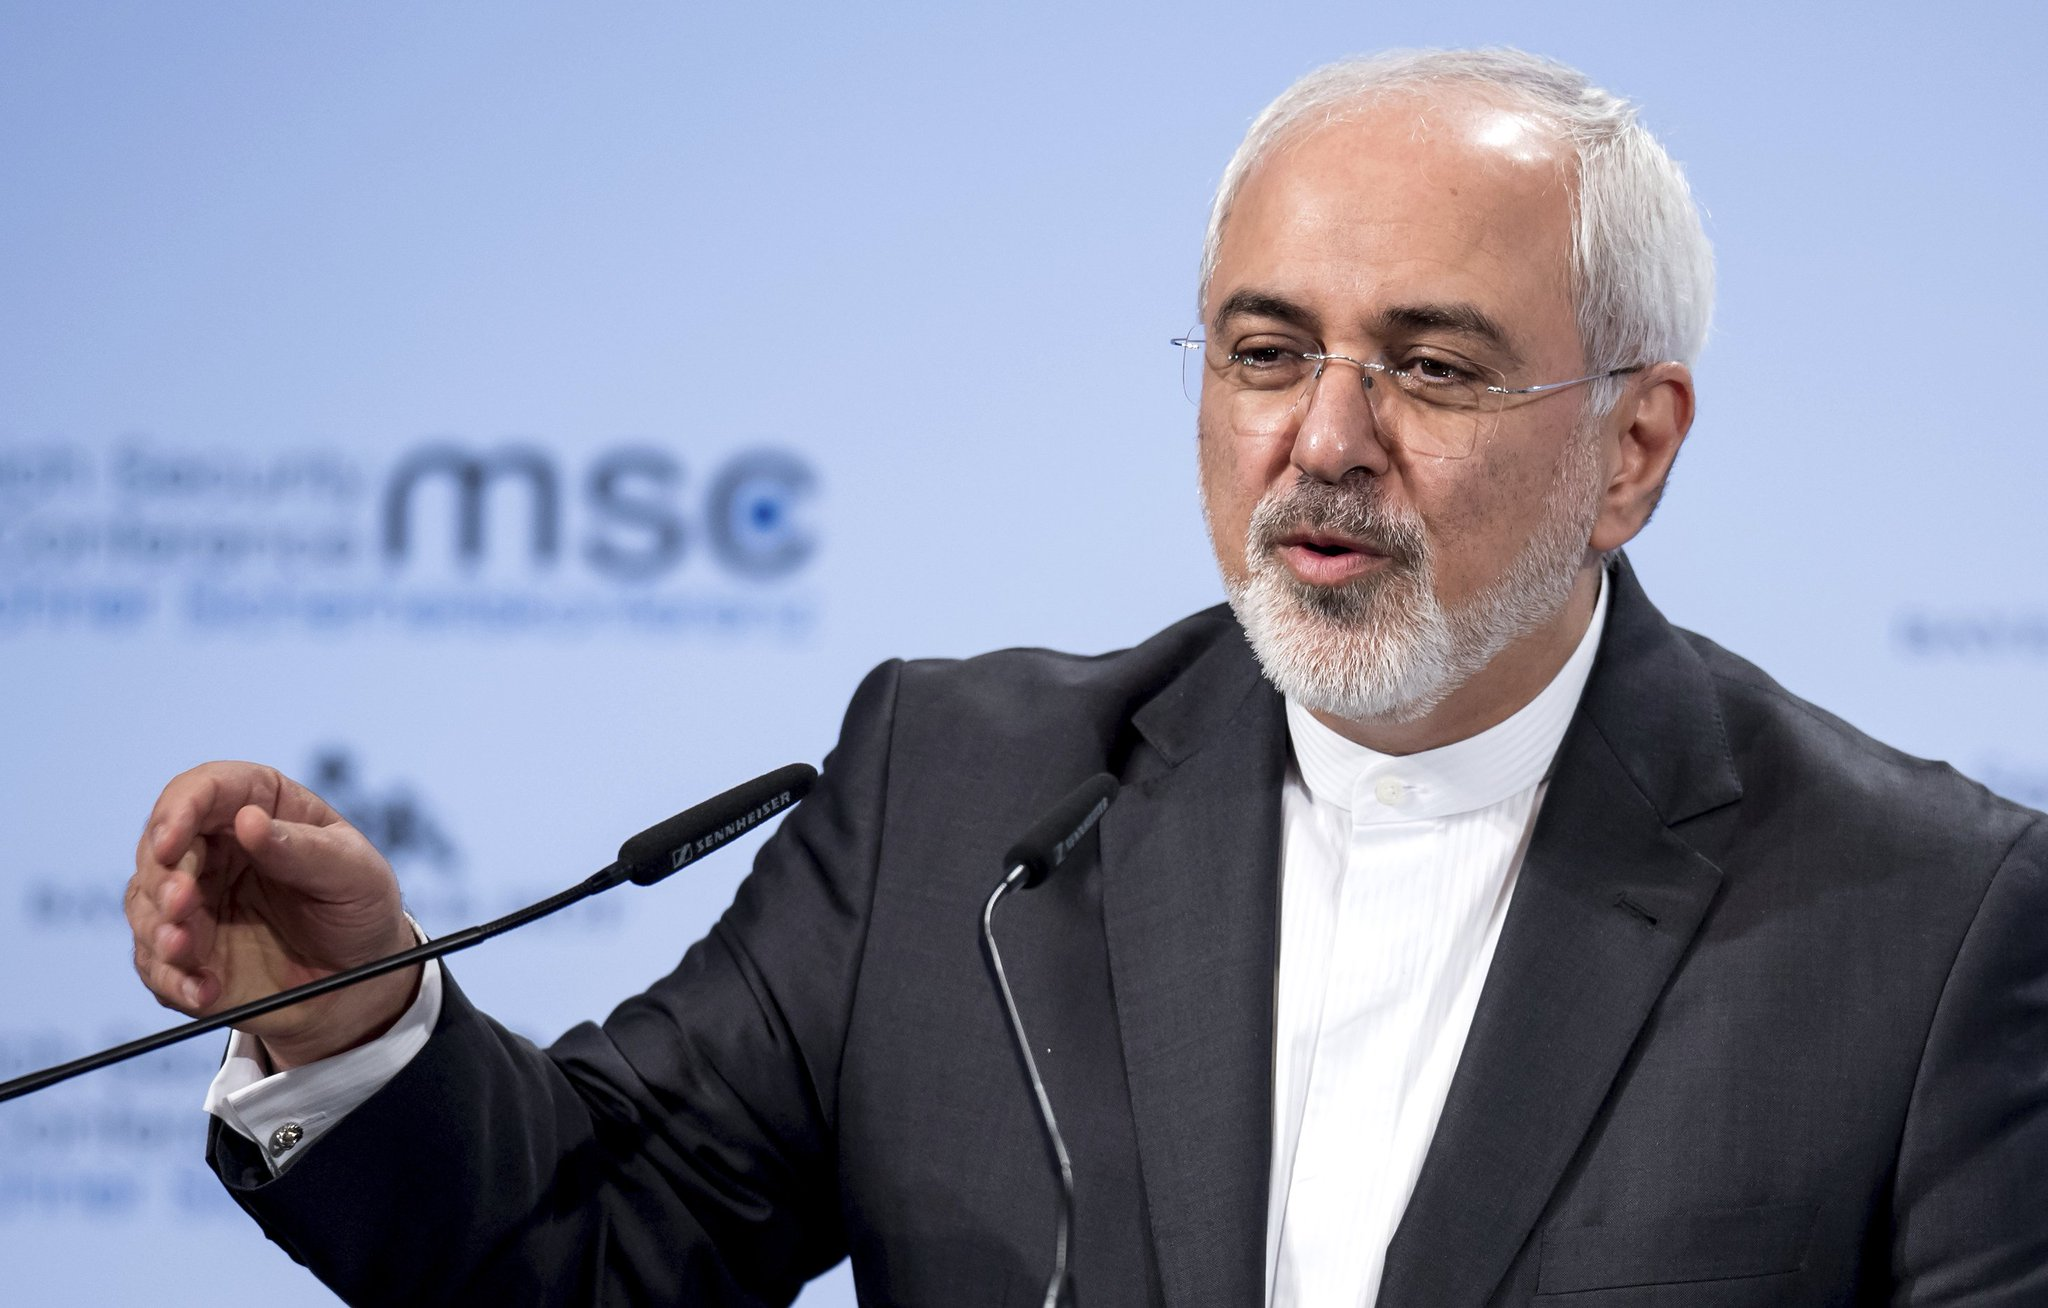 EXCLUSIVE: Iranian FM @JZarif says the #US will become outsider if breaks nuke deal https://t.co/mkp4tGsyQV https://t.co/DxXm3XIbg4